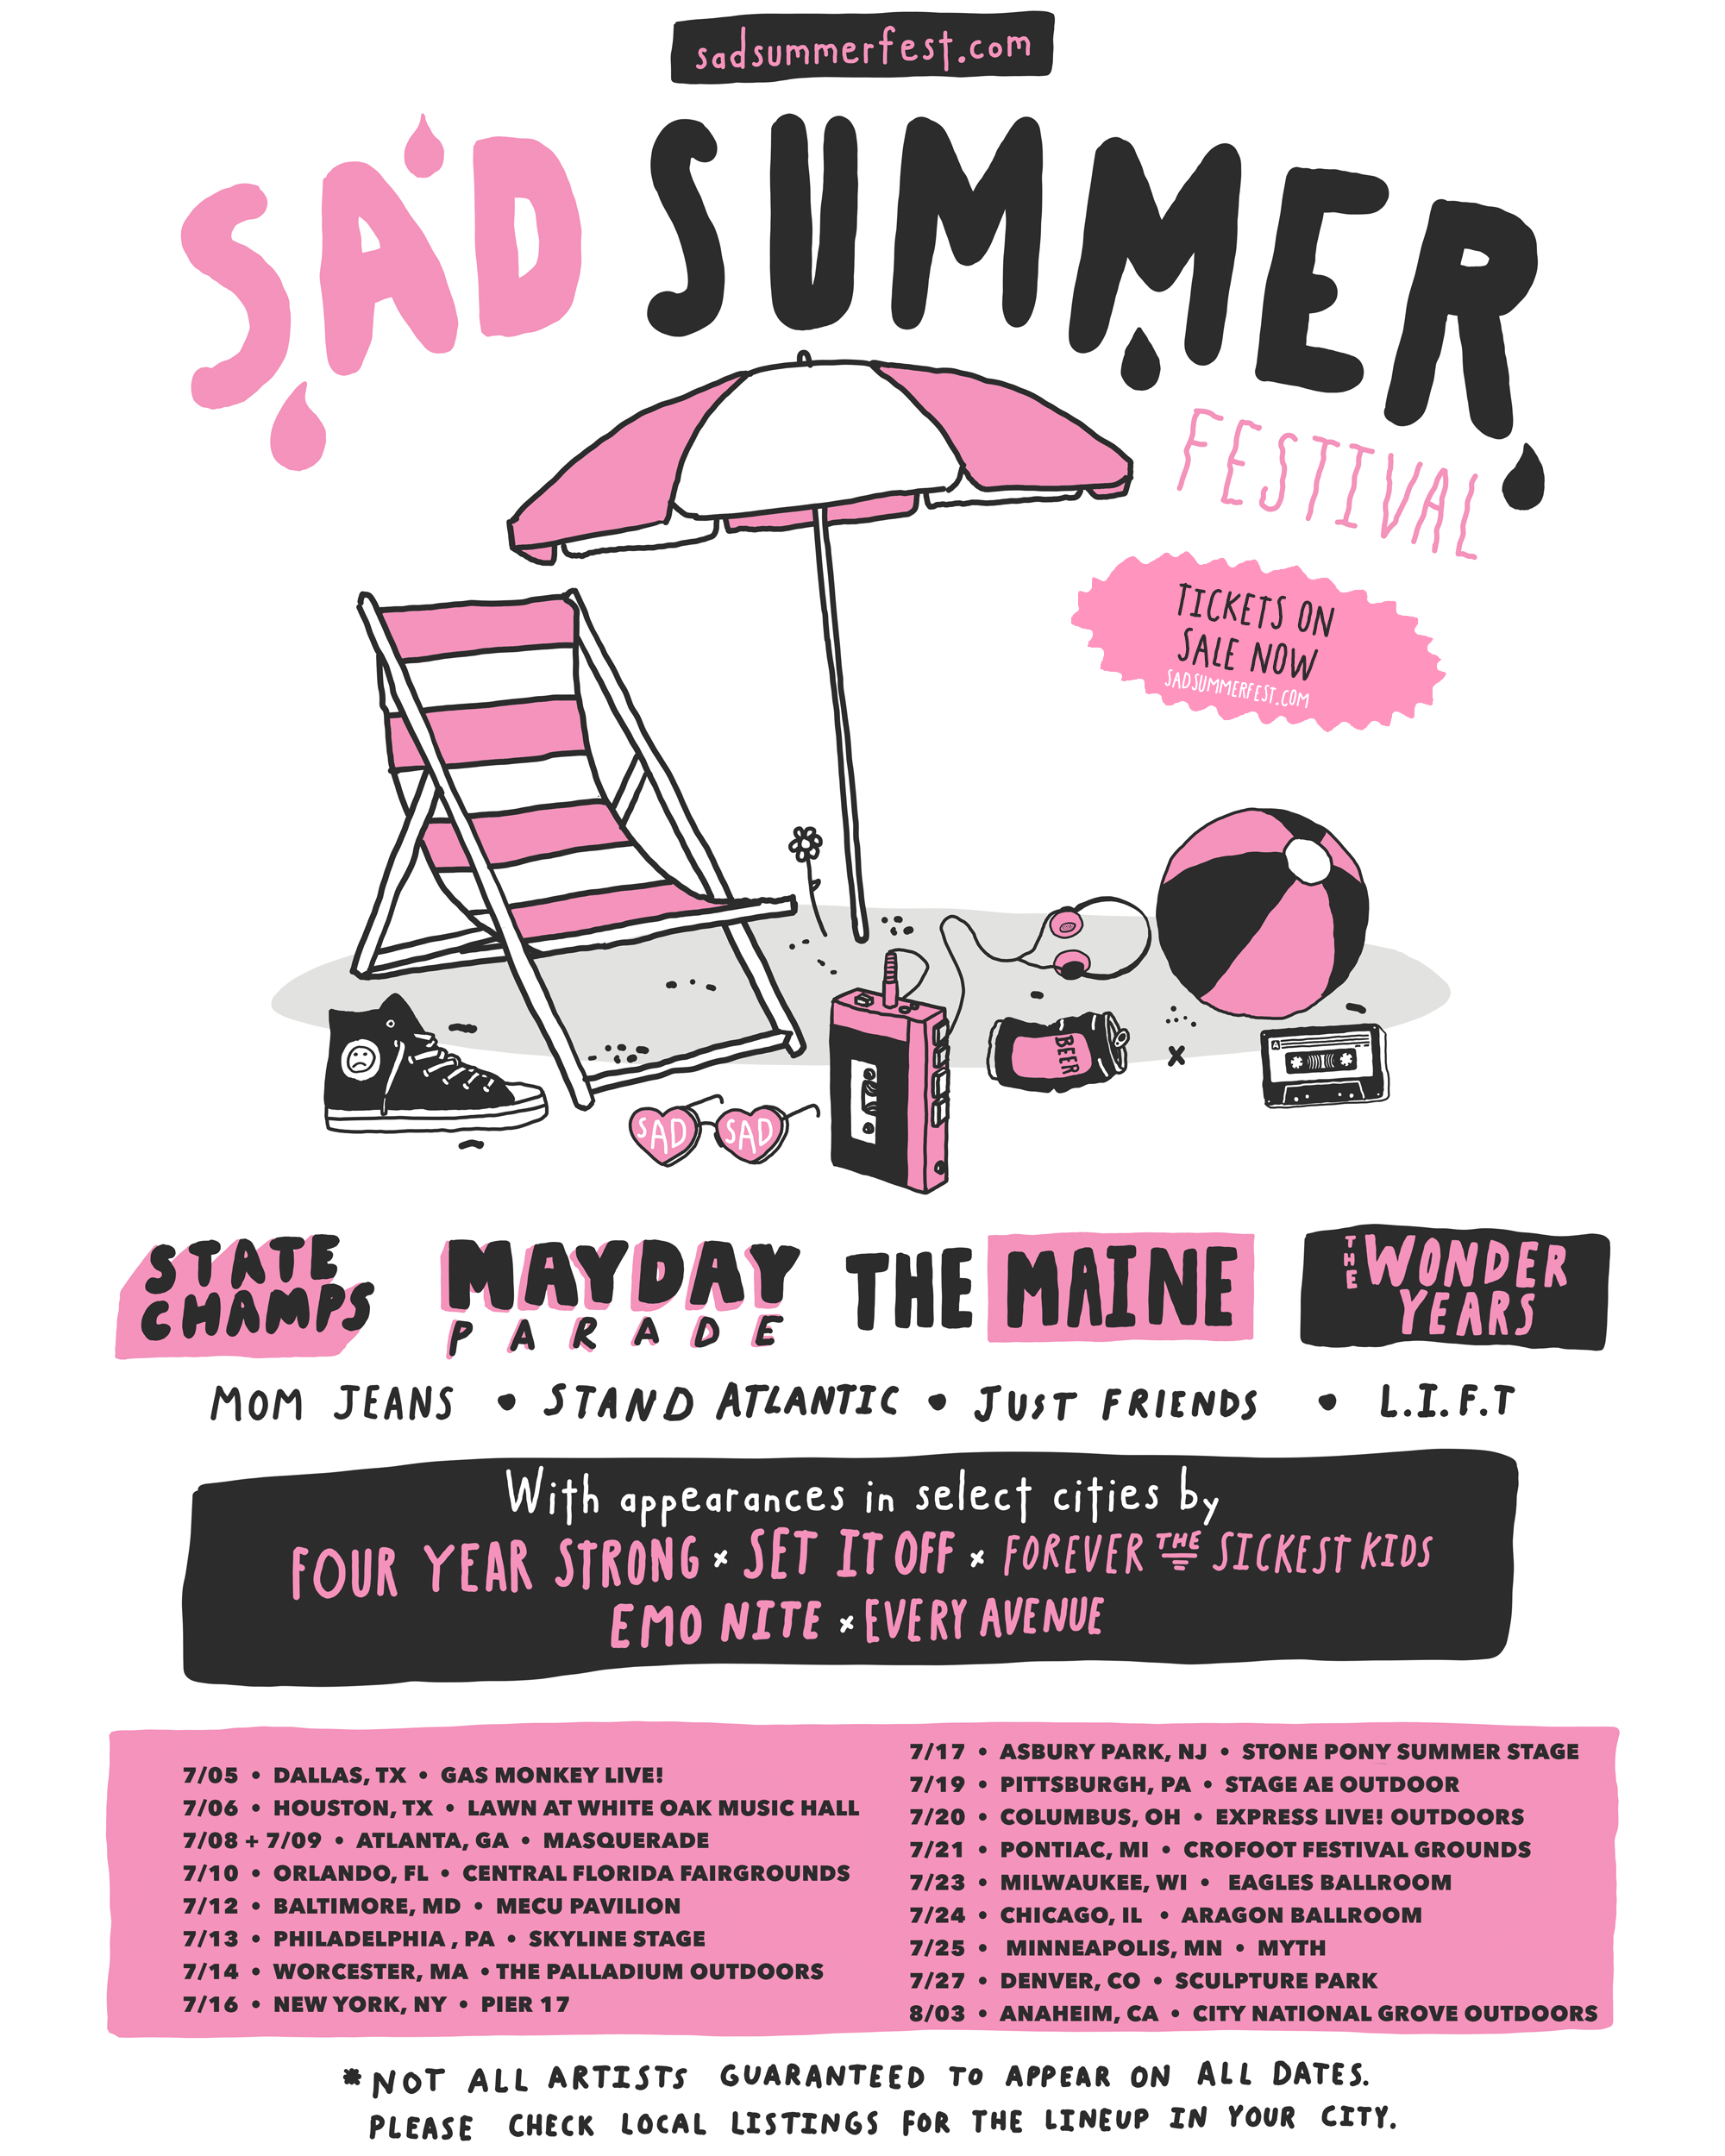 Tickets on sale now! — Sad Summer Festival